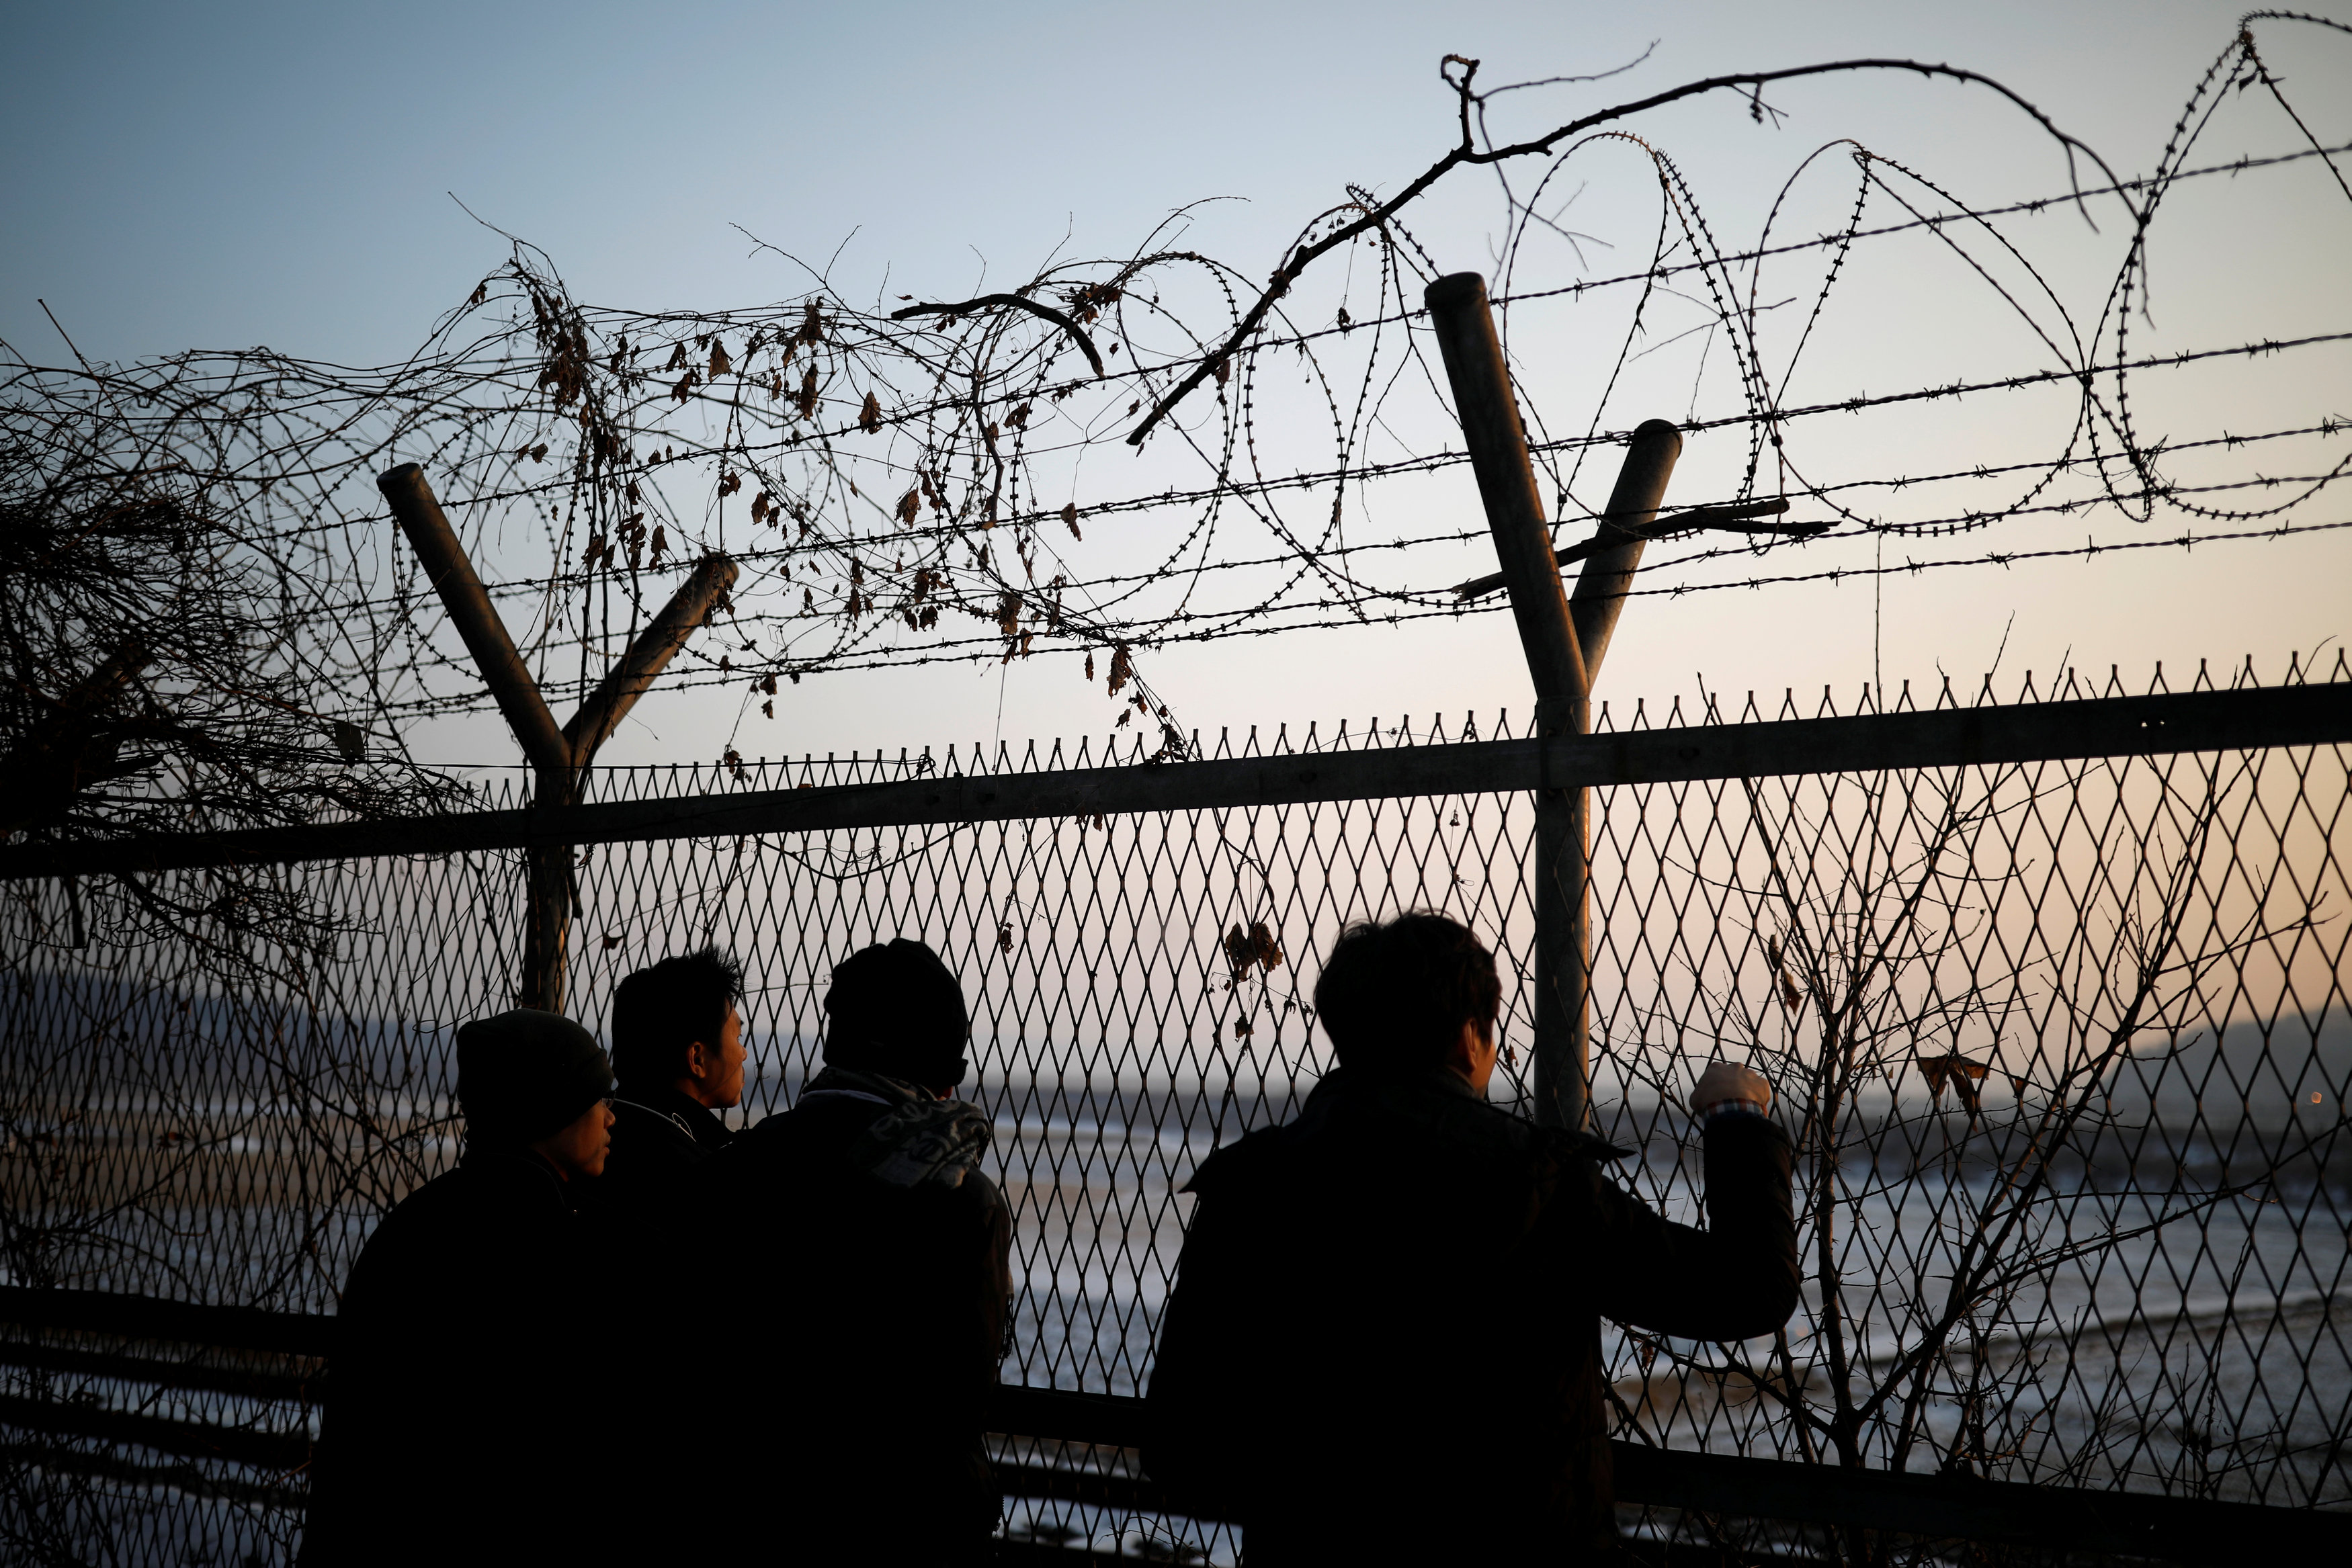 People look toward the north through a barbed-wire fence near the militarized zone separating the two Koreas, in Paju, South Korea, December 21, 2017.